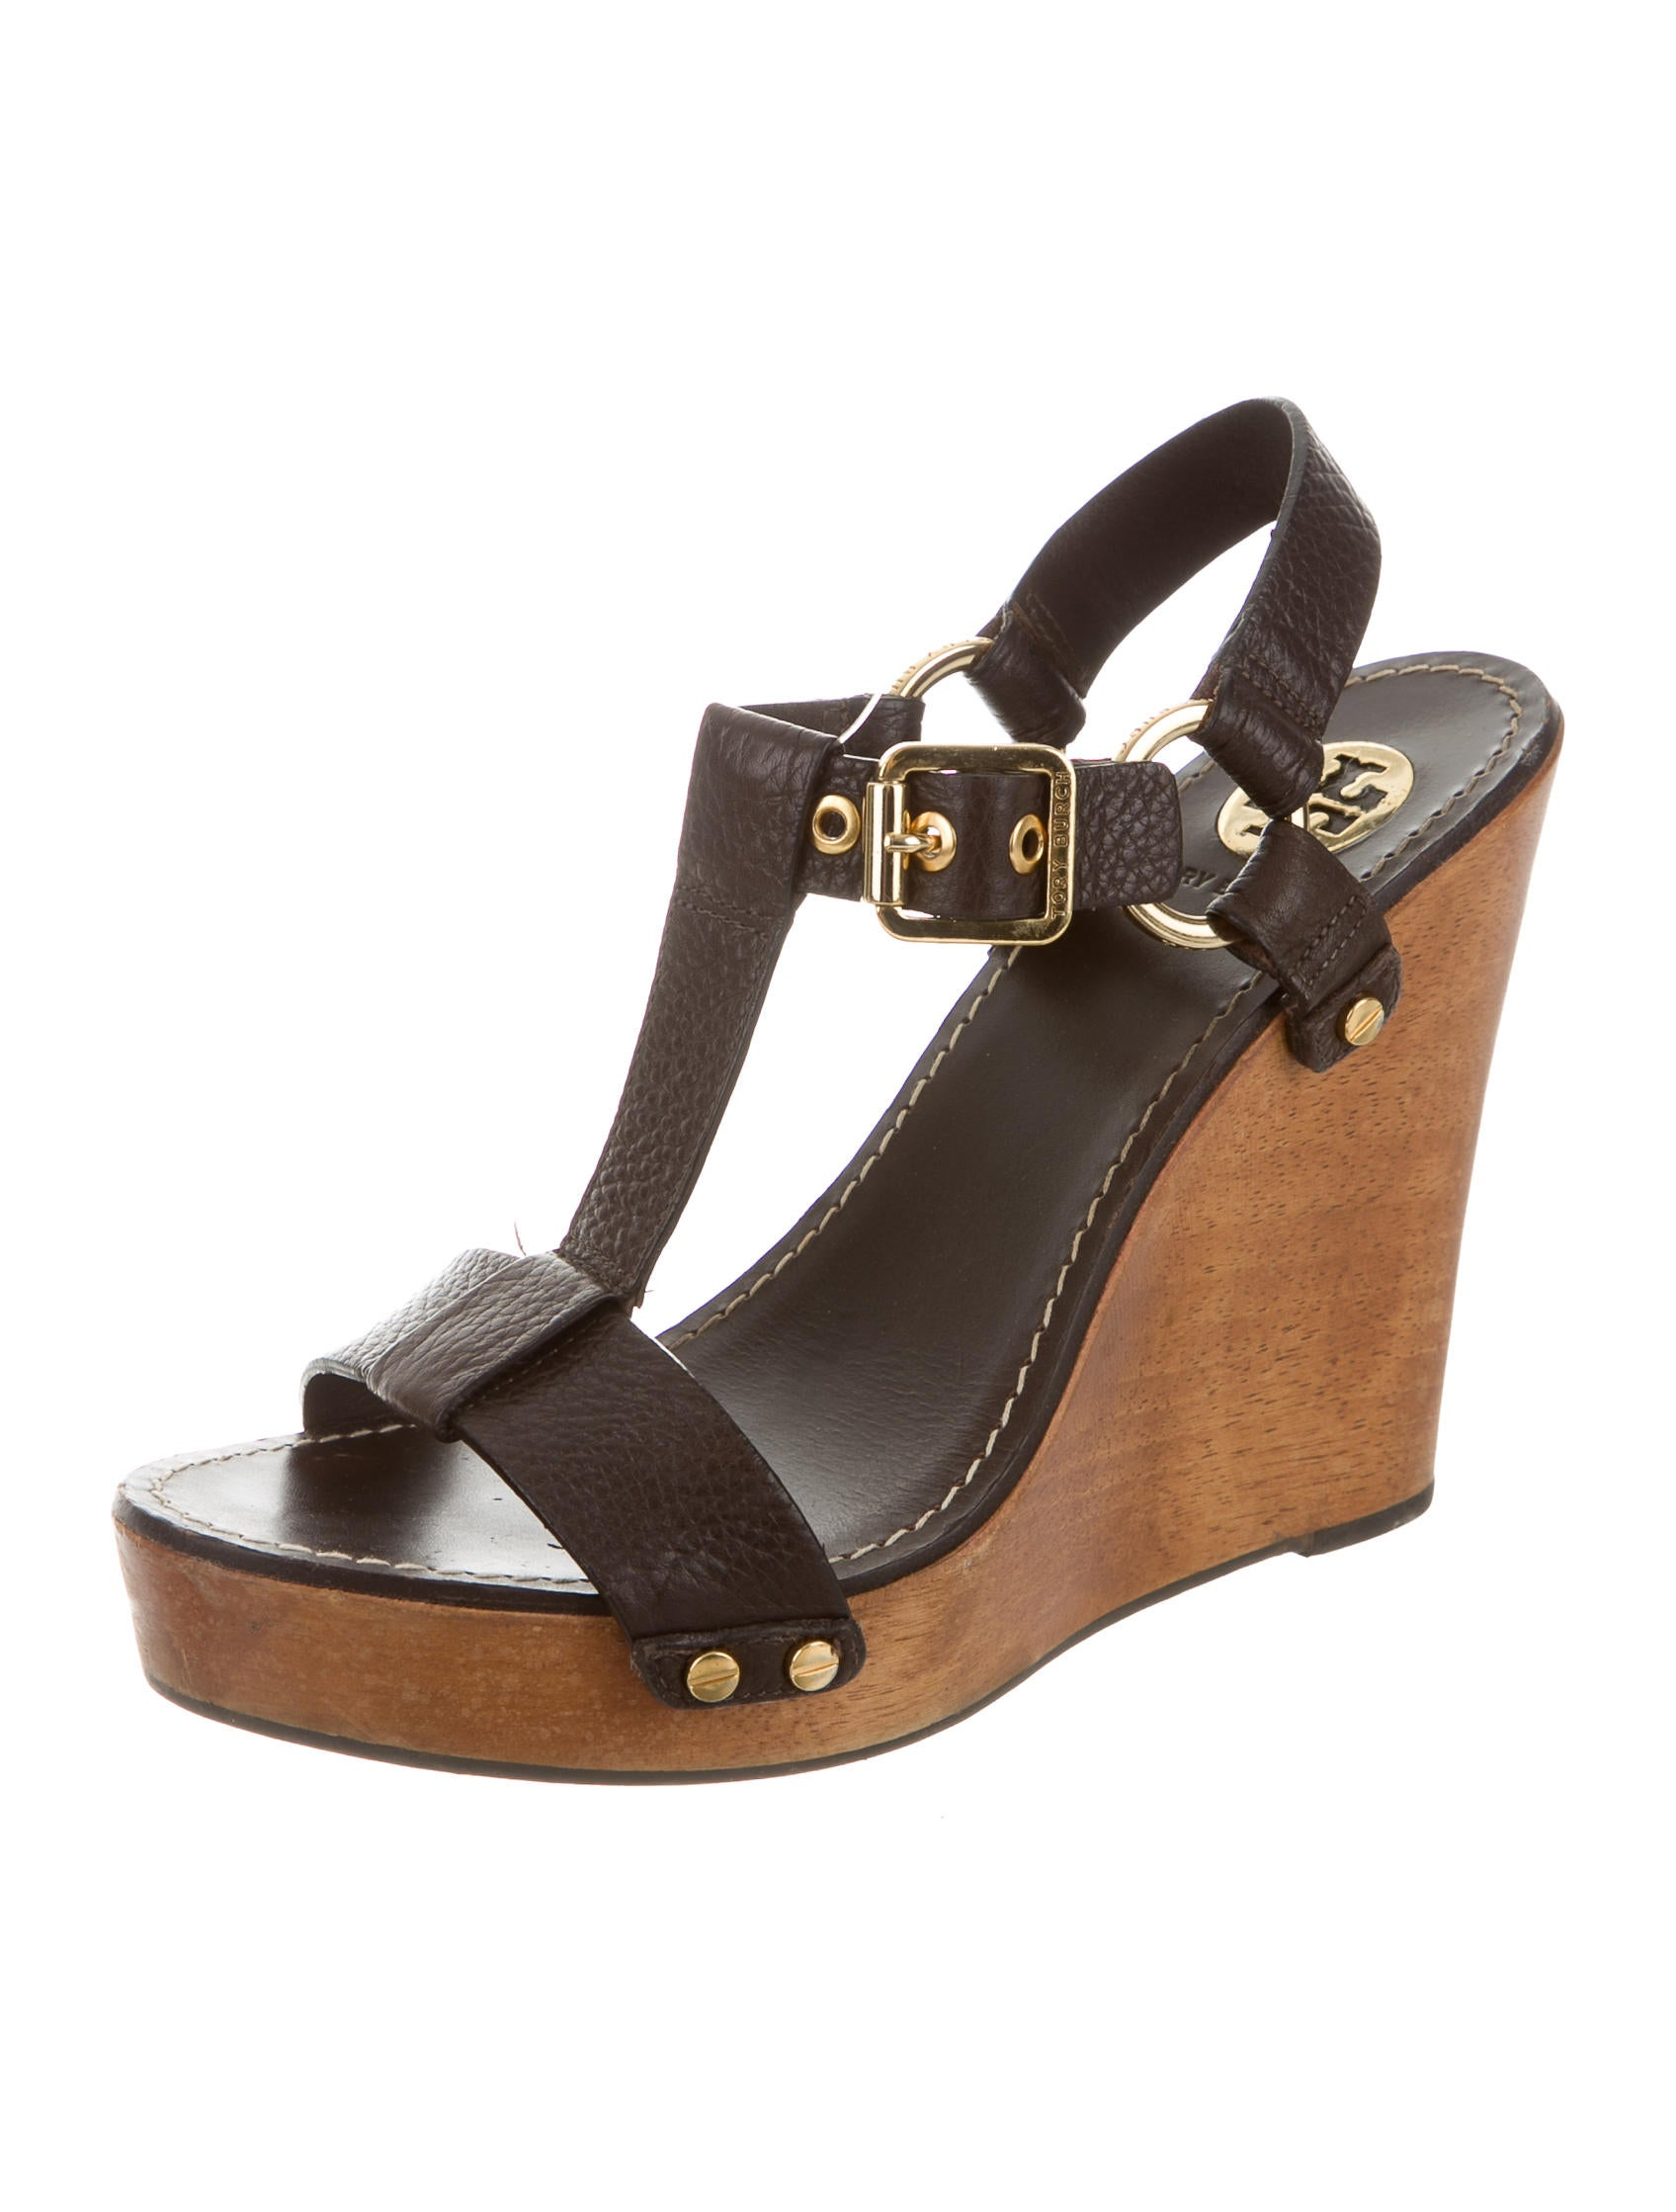 Shop for leather wedge shoes online at Target. Free shipping on purchases over $35 and save 5% every day with your Target REDcard.